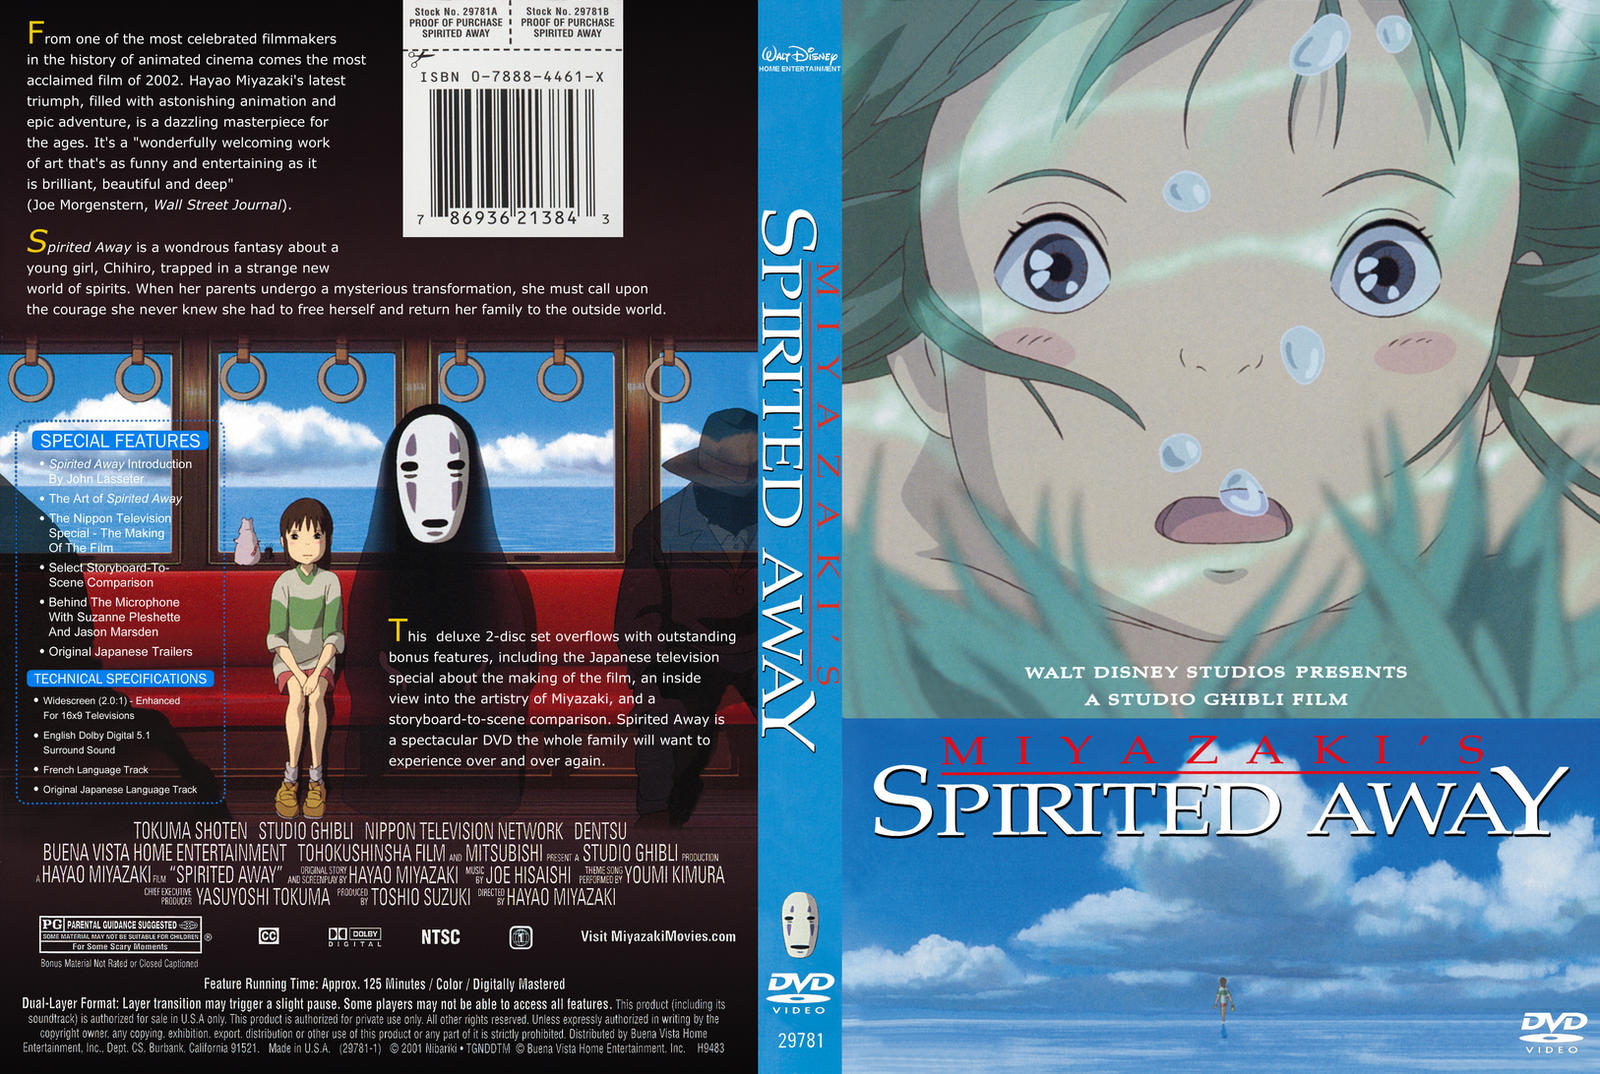 a review of the story of spirited away